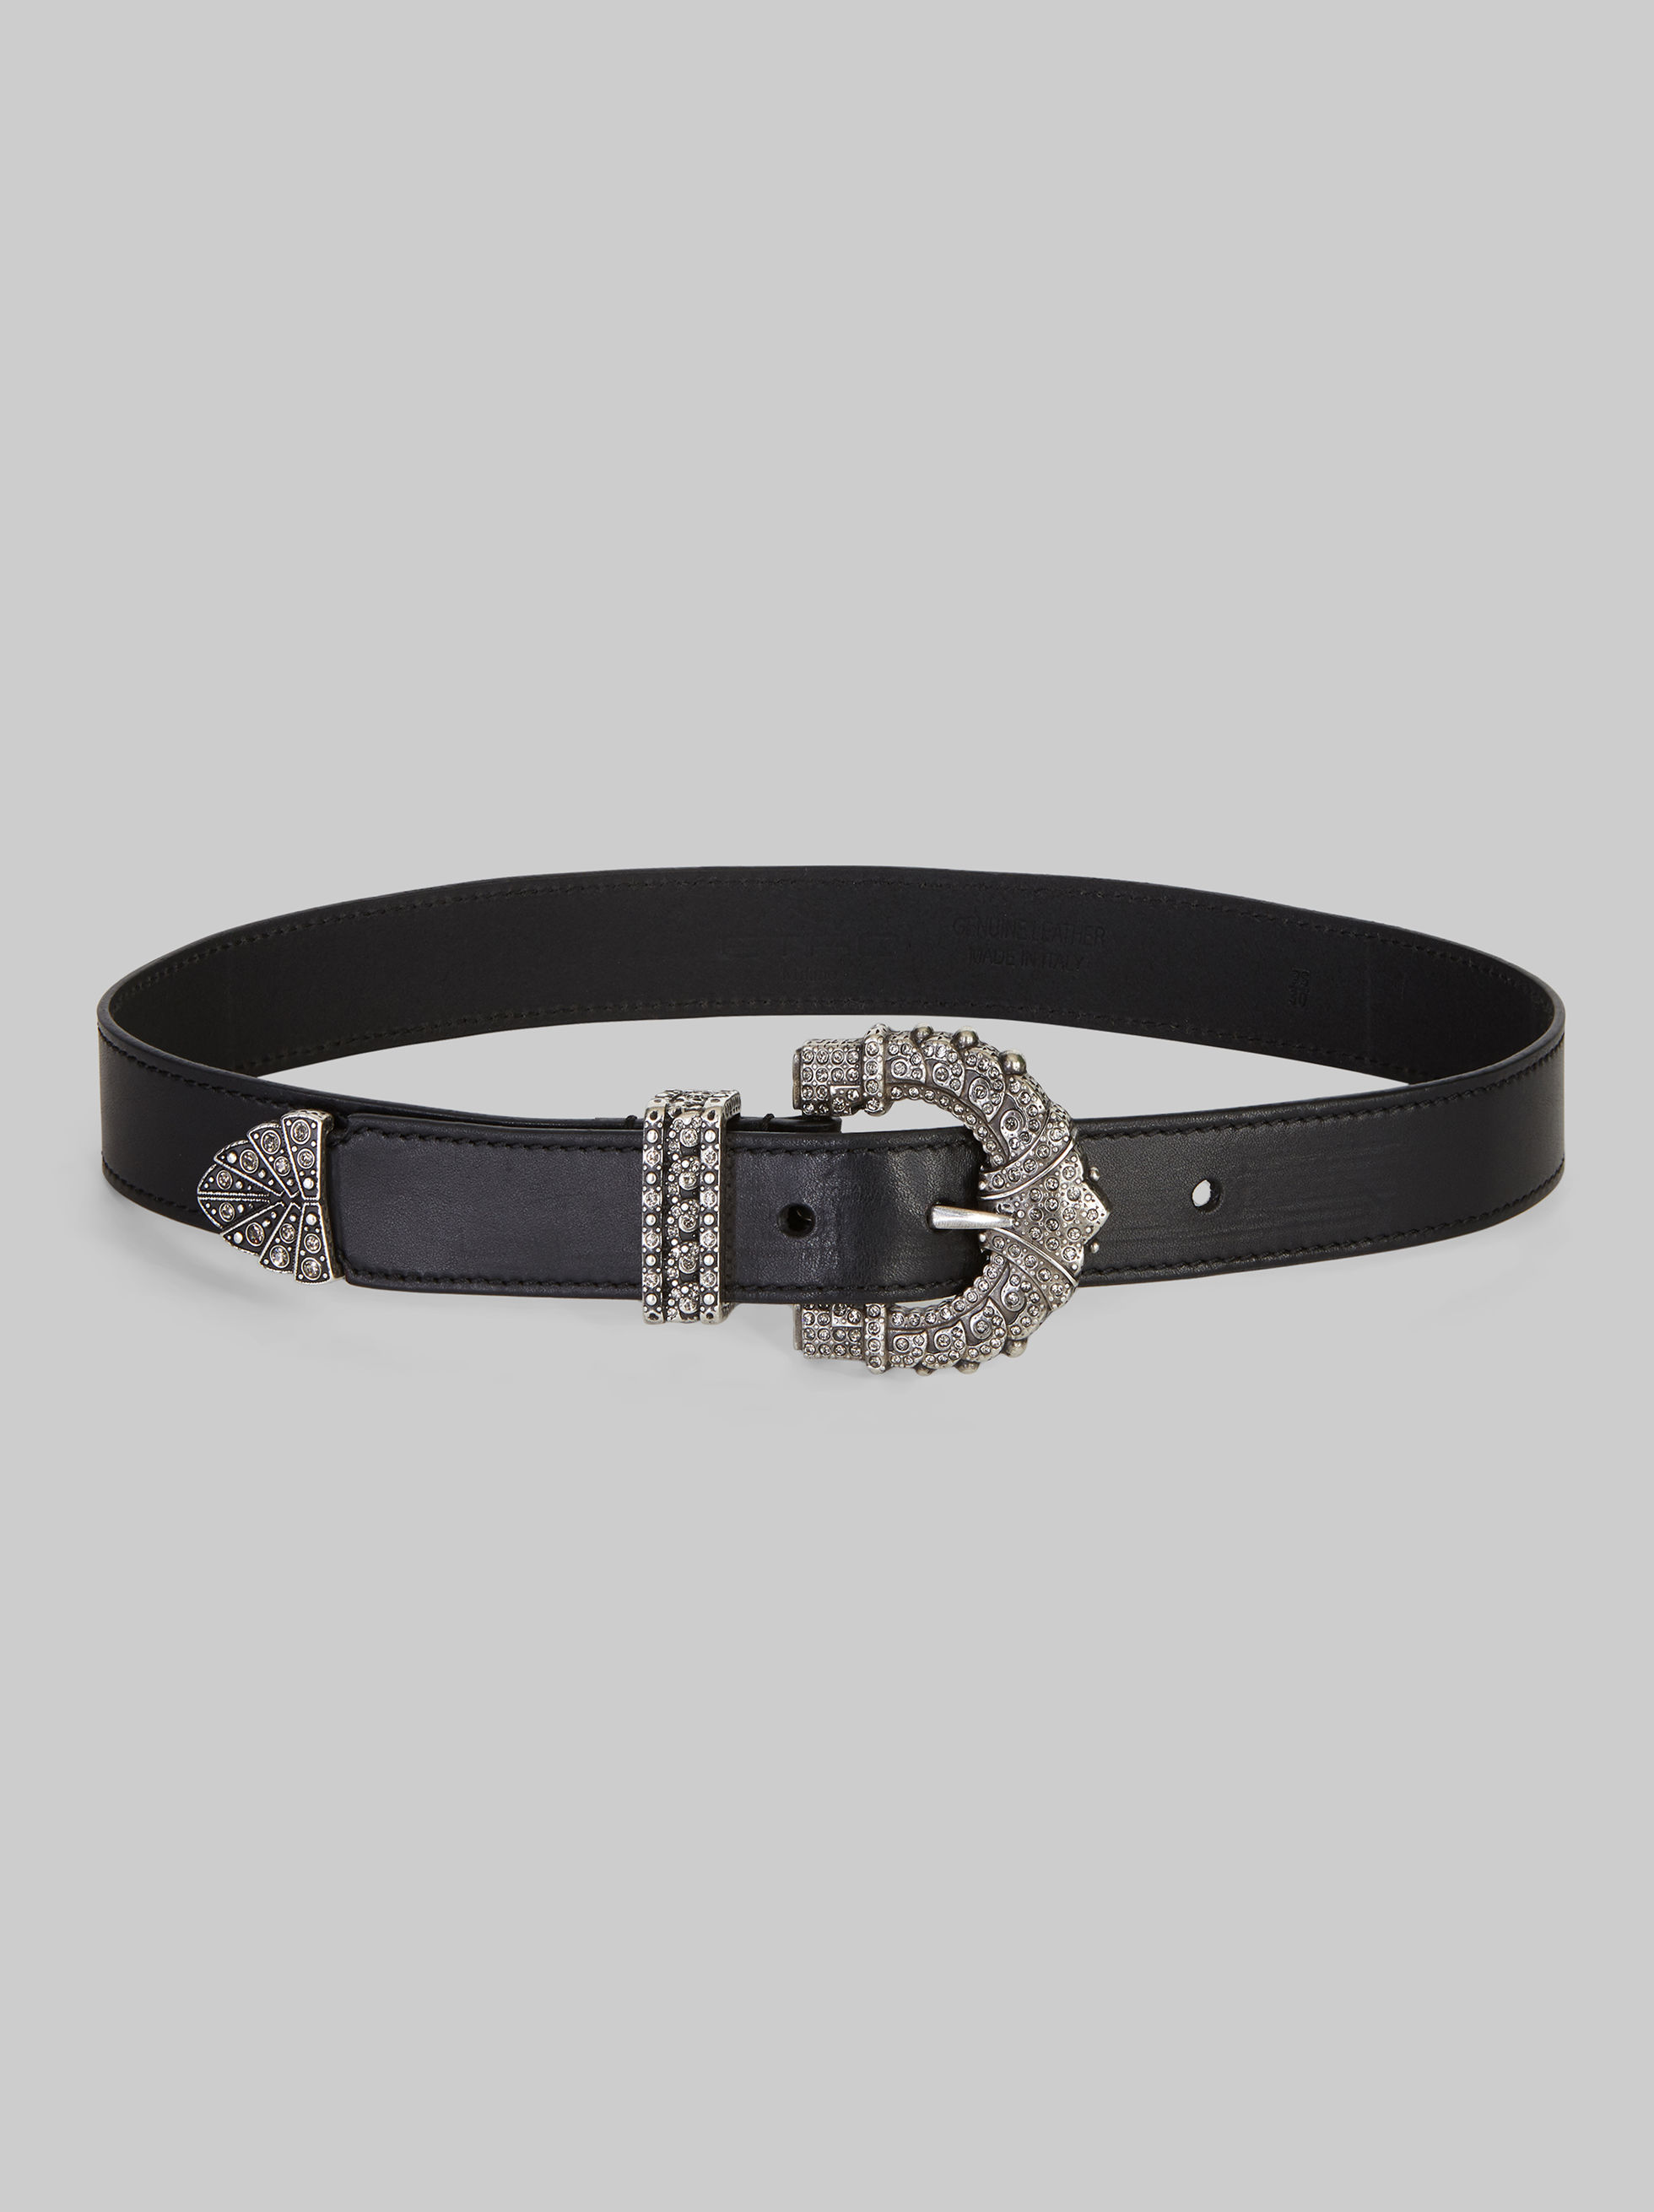 BELT WITH JEWELLED BUCKLE